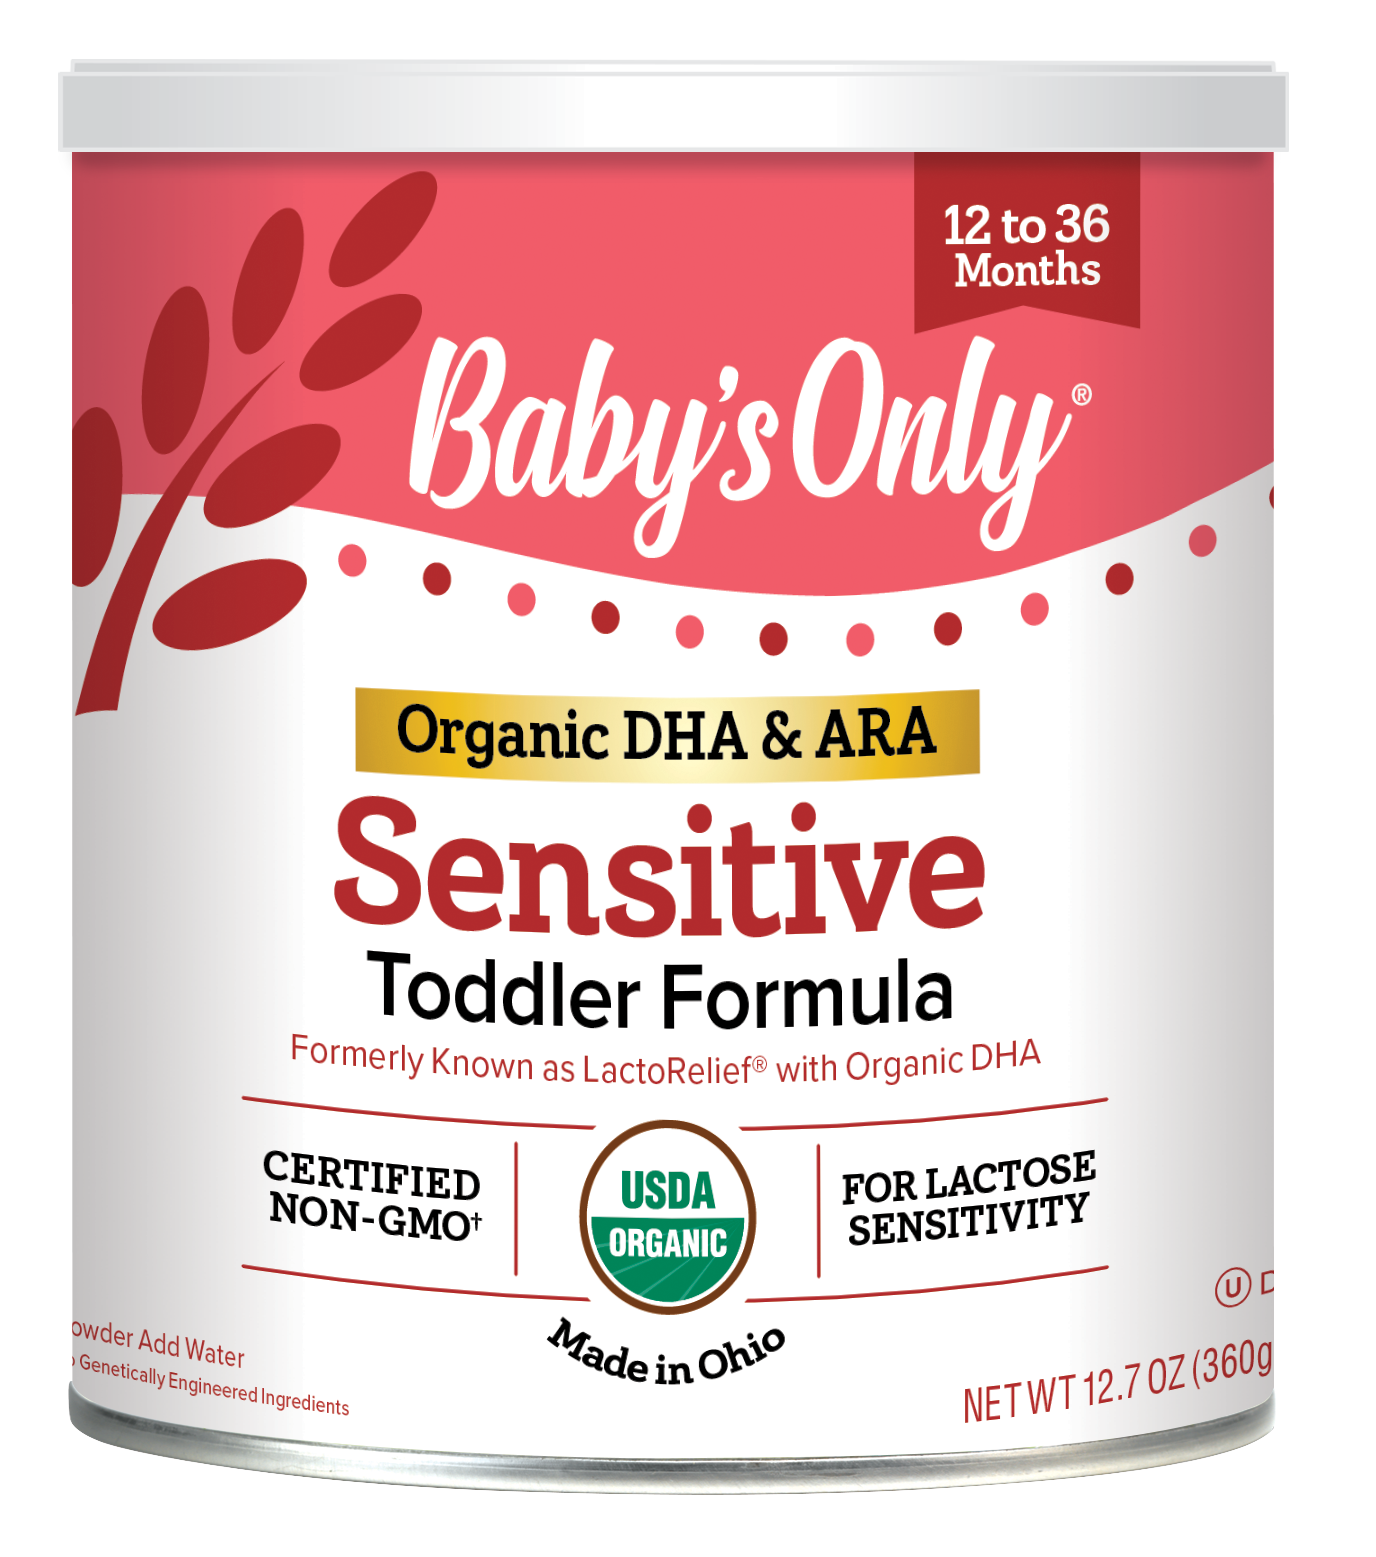 Our DHA and ARA are naturally derived from egg yolks for easier absorption and greater bioavailability